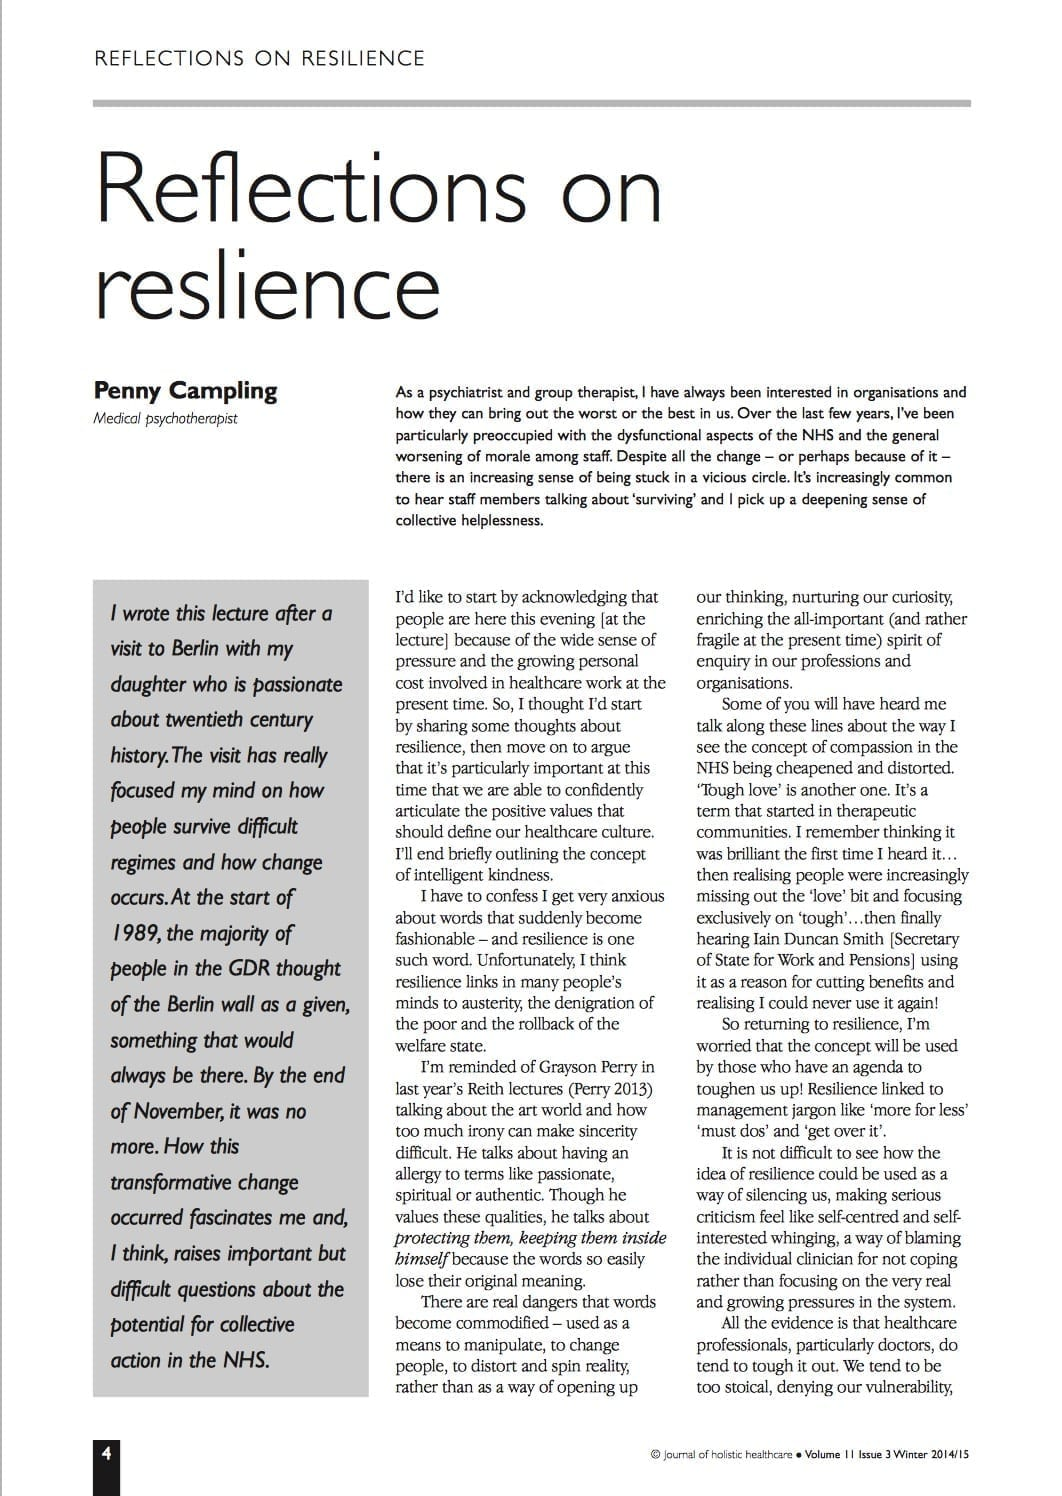 11.3.1 reflections on resilience